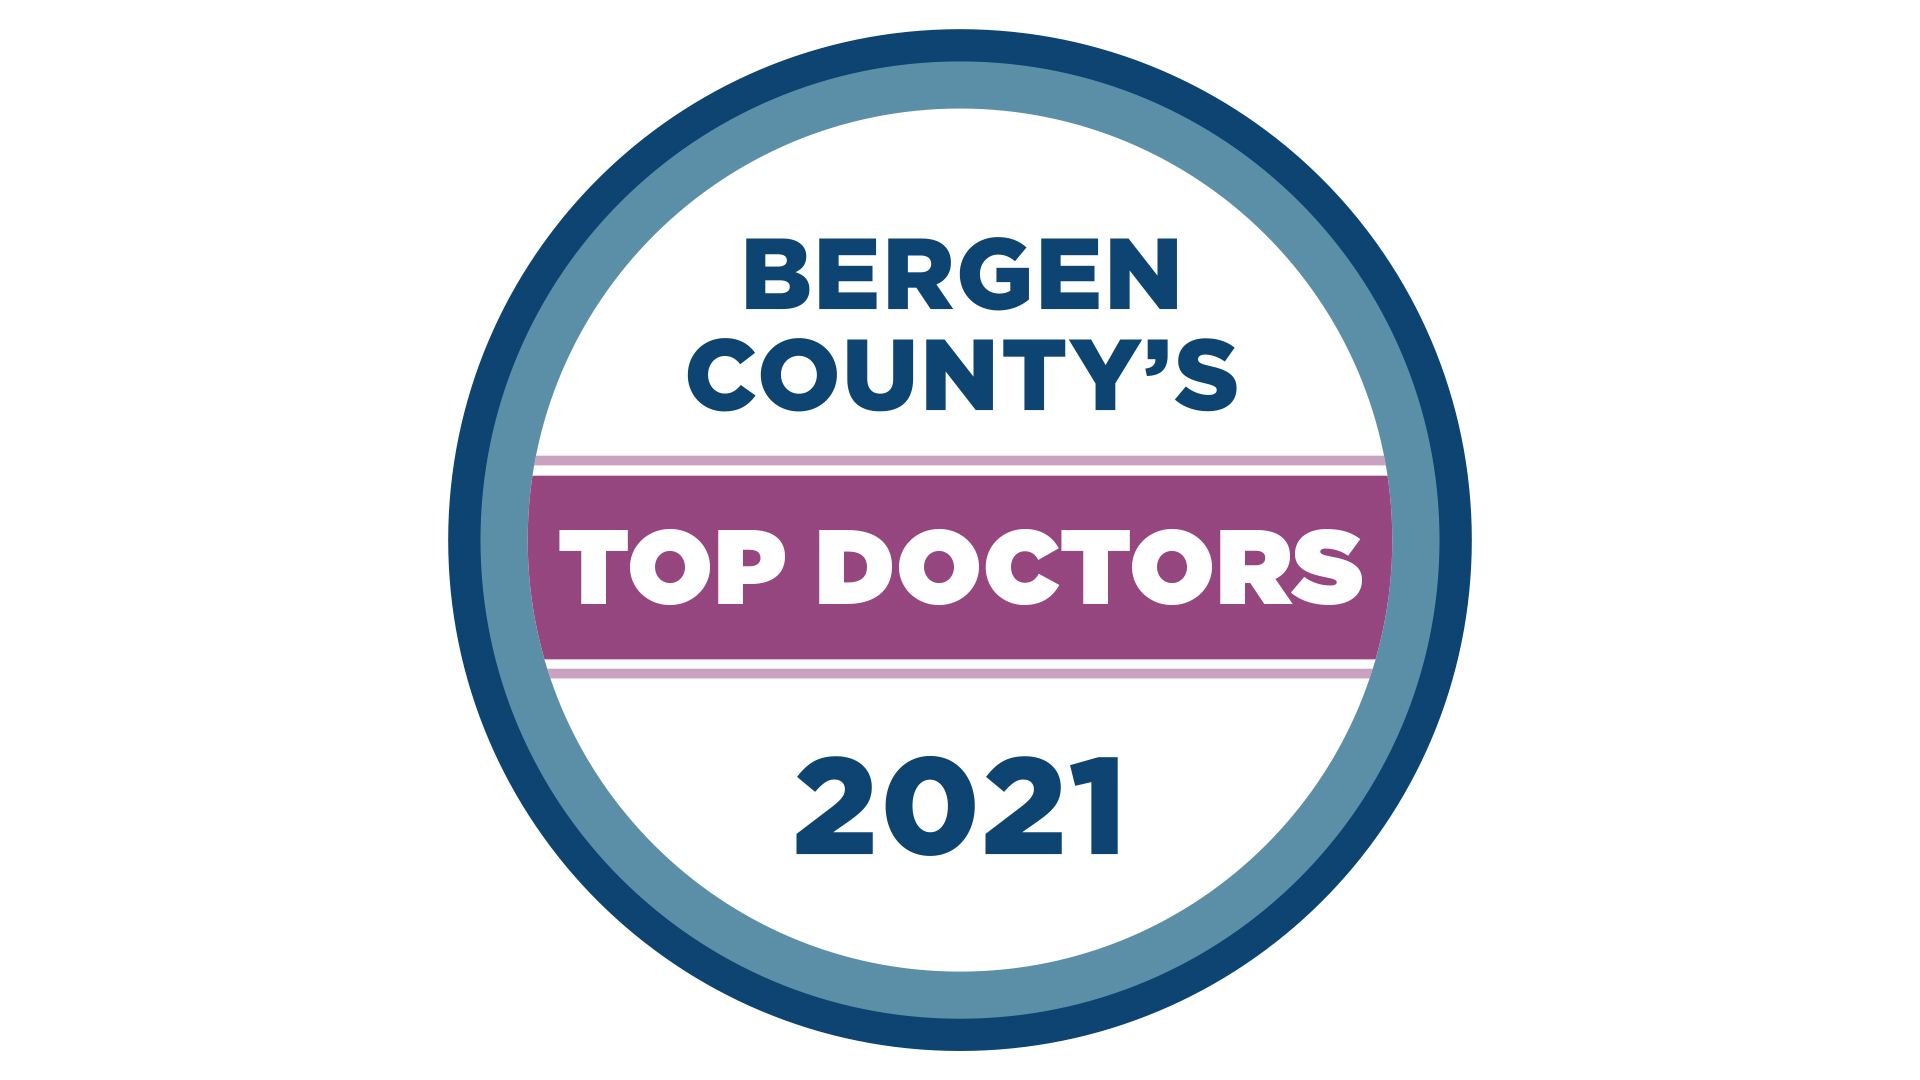 Bergen County Top Doctors 2021